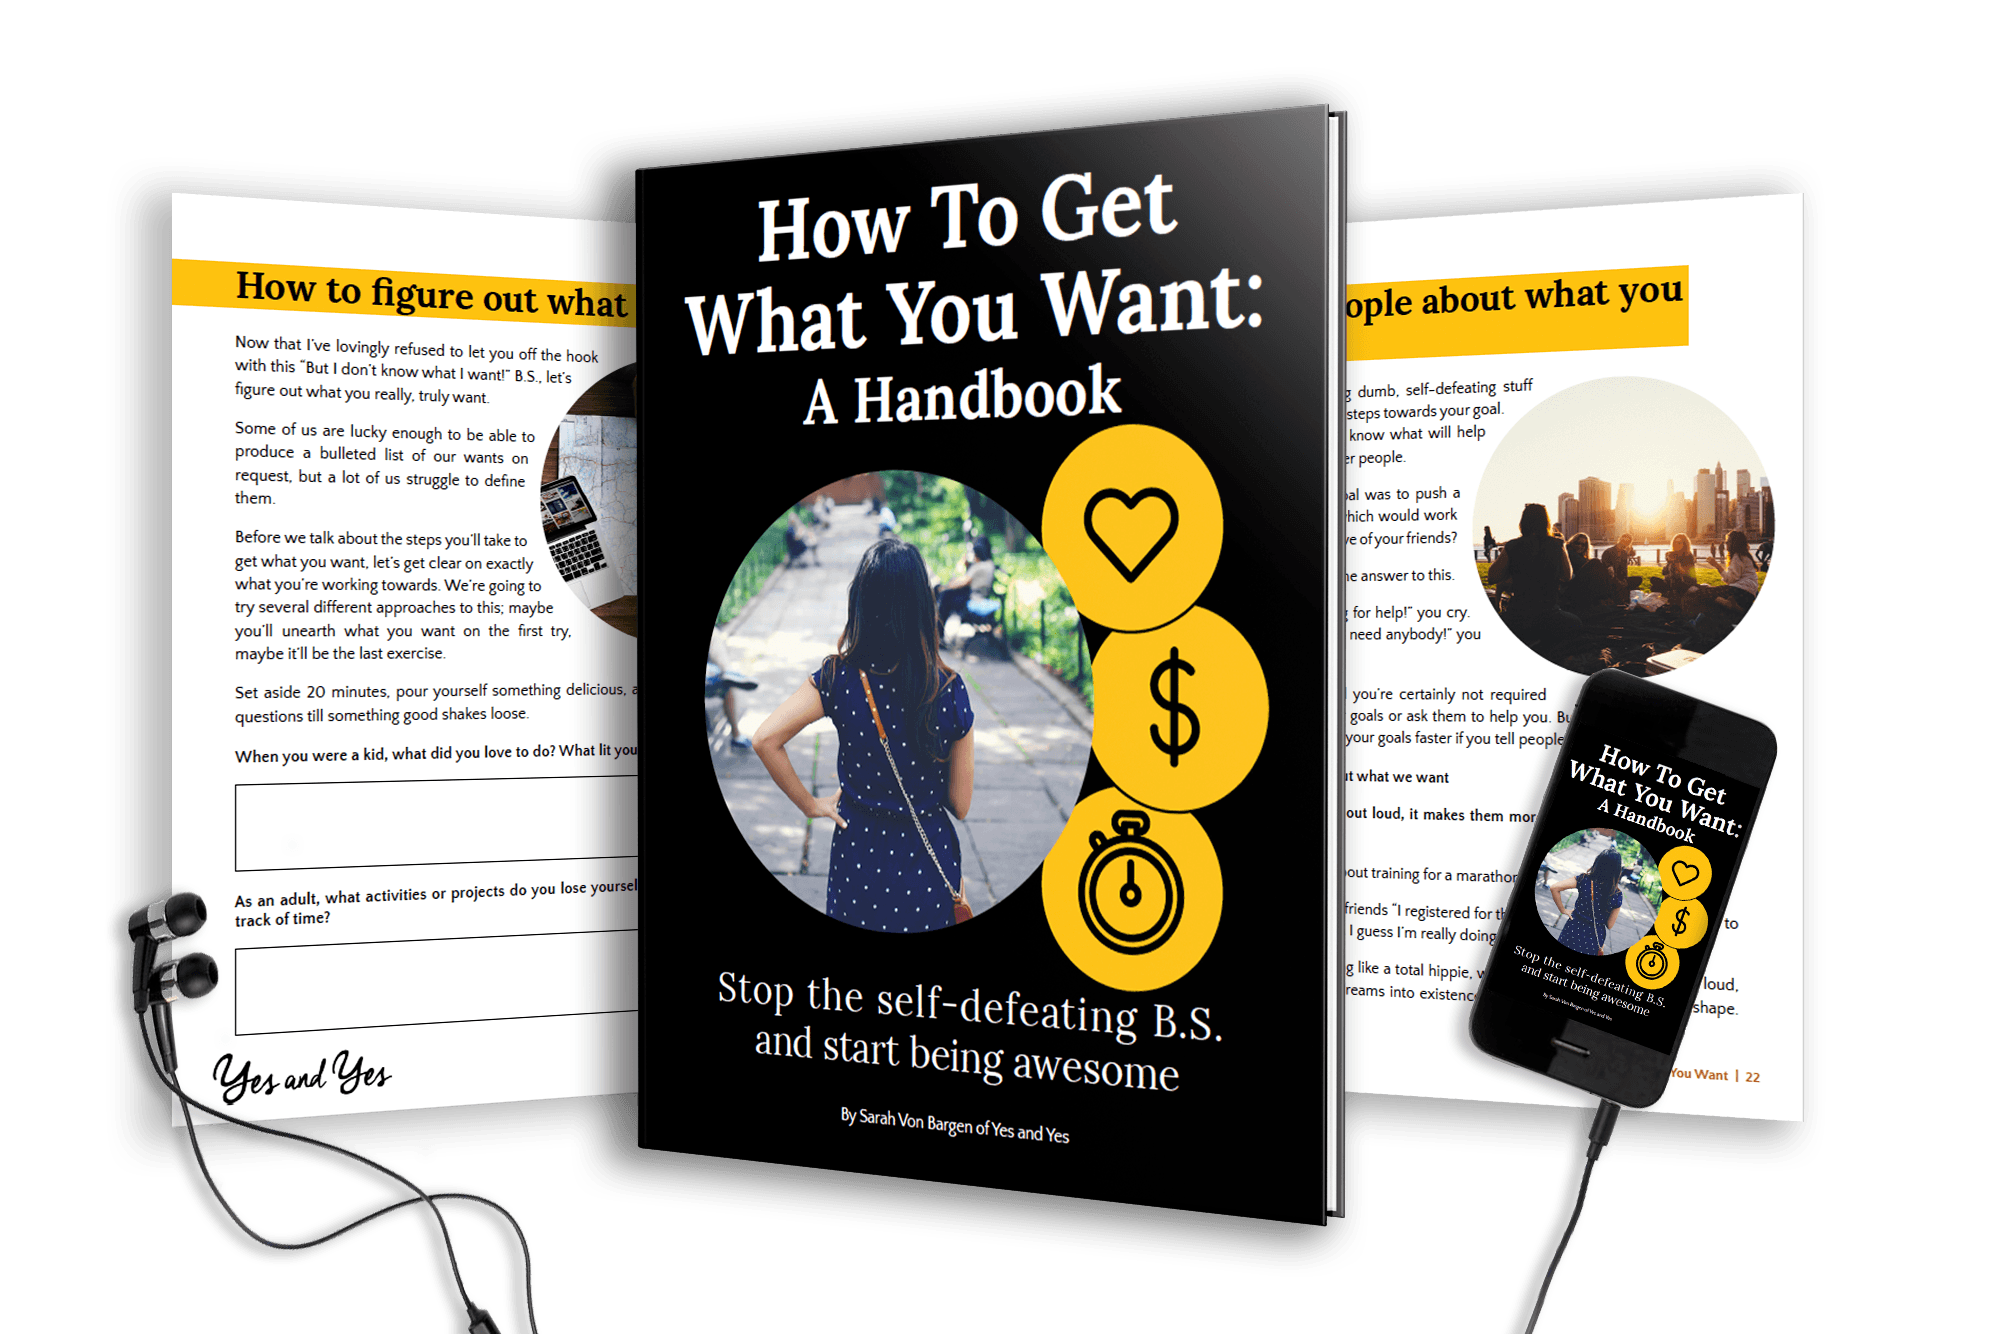 Get What You Want: A Handbook